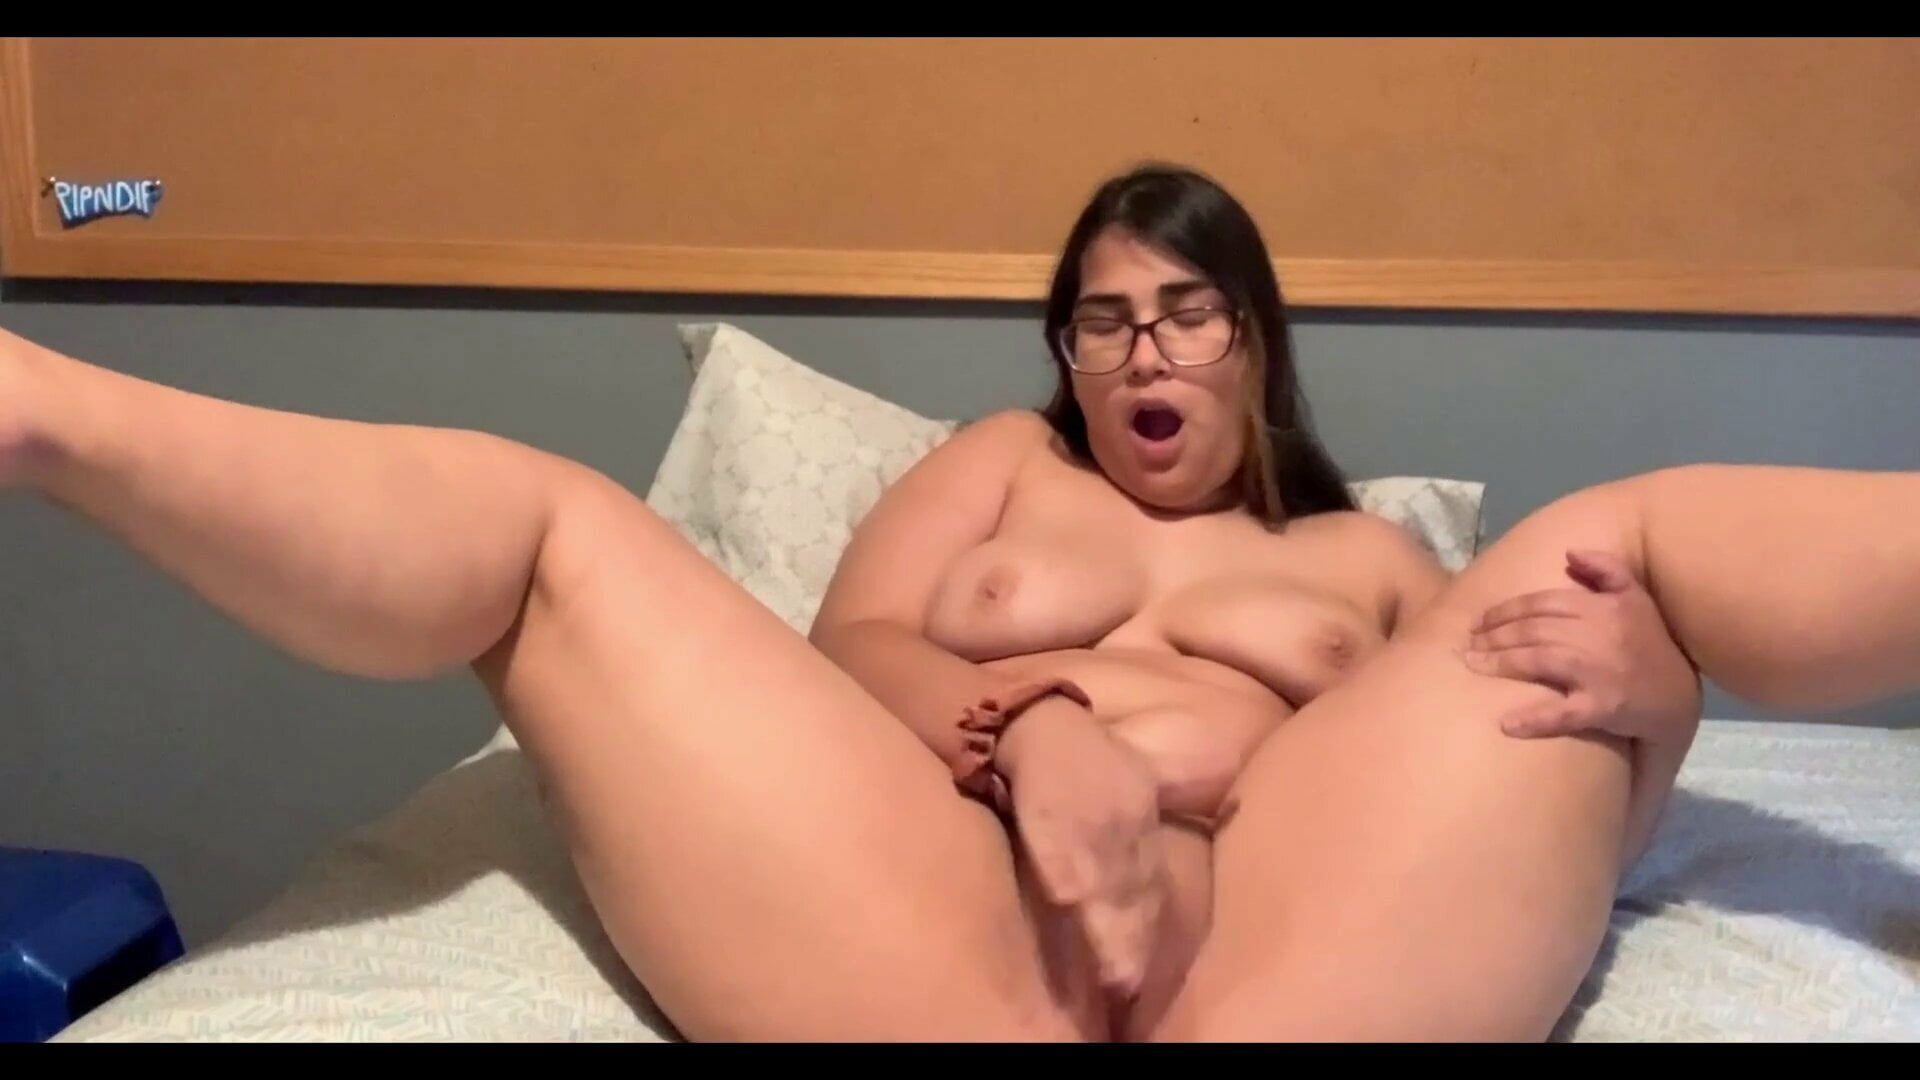 Download free grils itunes nude